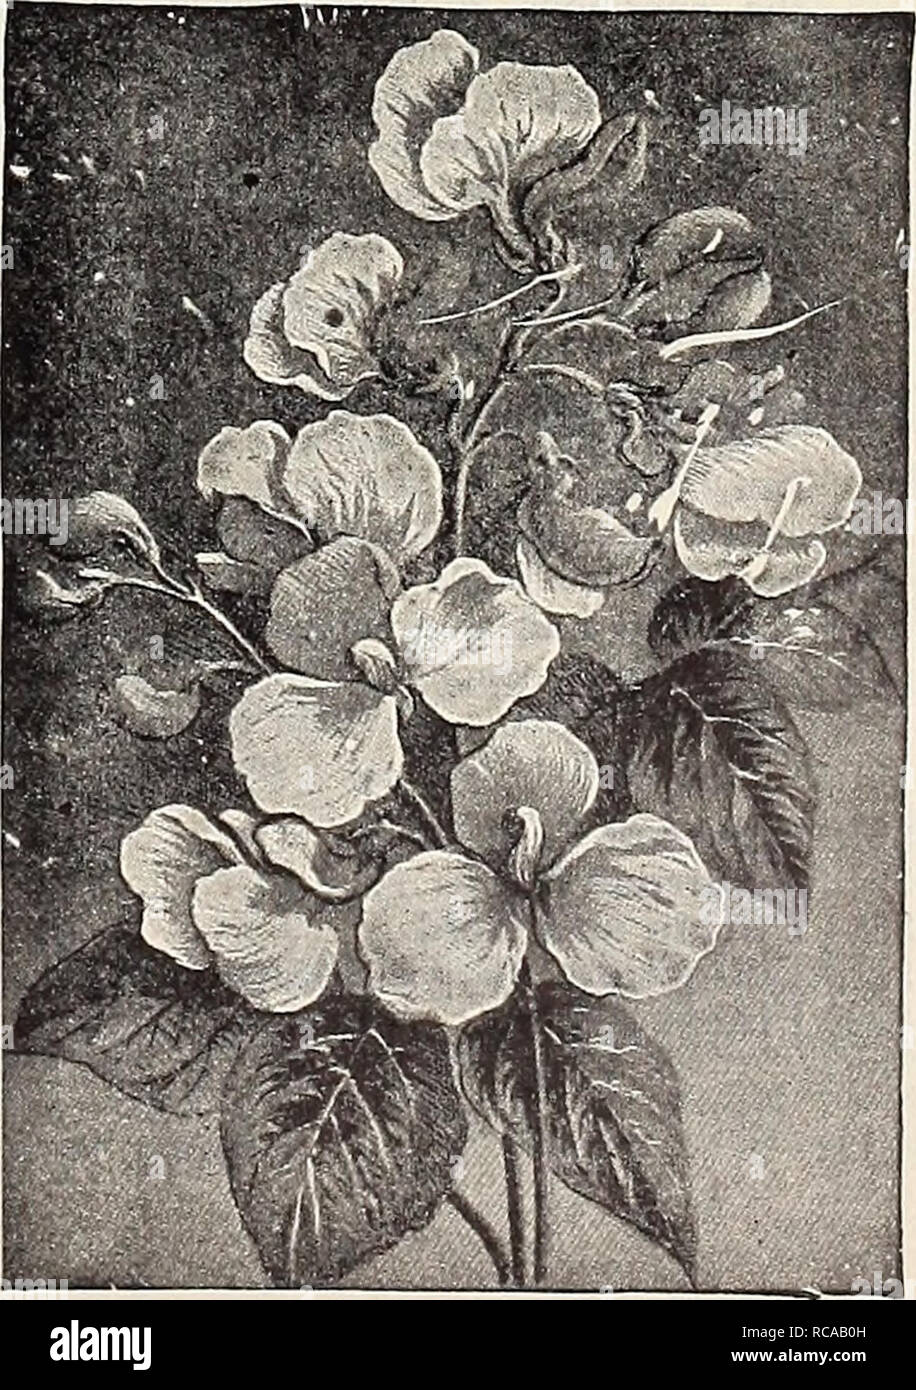 . Dreer's 1907 garden book. Seeds Catalogs; Nursery stock Catalogs; Gardening Equipment and supplies Catalogs; Flowers Seeds Catalogs; Vegetables Seeds Catalogs; Fruit Seeds Catalogs. Pansy Psyche. PETUNIA ROSY MORN. 3566 Petunias are one of our most effective summer blooming plants, and this new variety is probably the most striking yet introduced. It belongs to the small free-flowering section, and forms nice bushy fairly dwarf plants, which are cov- ered from early summer till hard frost with brilliant car- mine-pink flowers, with white throat and centre. For beds, baskets, vases and the ma - Stock Image